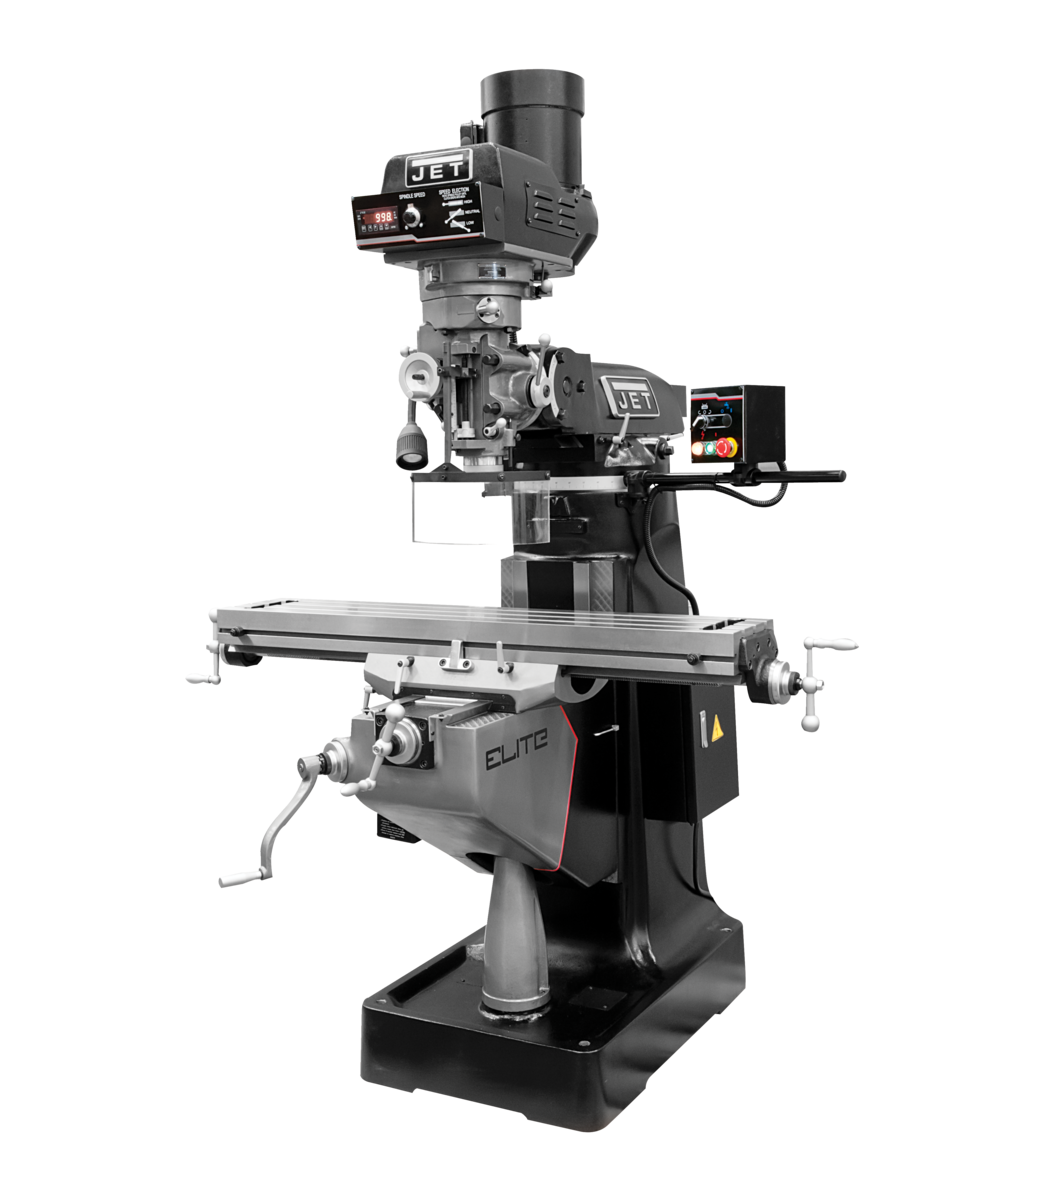 EVS-949 Mill with 2-Axis ACU-RITE 203 DRO and X-Axis JET Powerfeed